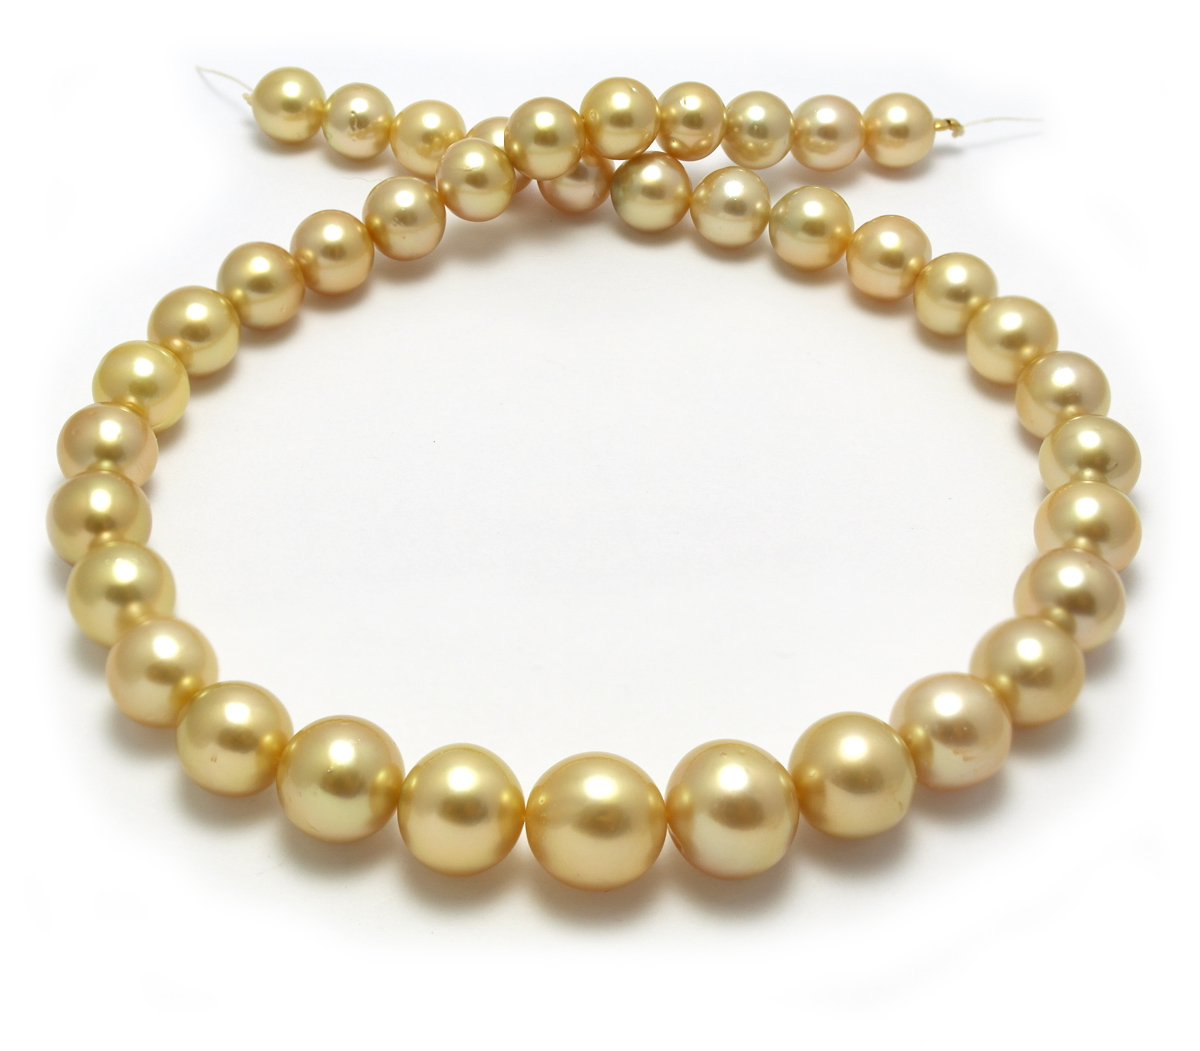 pearls pcs golden vera en ae jewelry souq product set gold perla price from uae